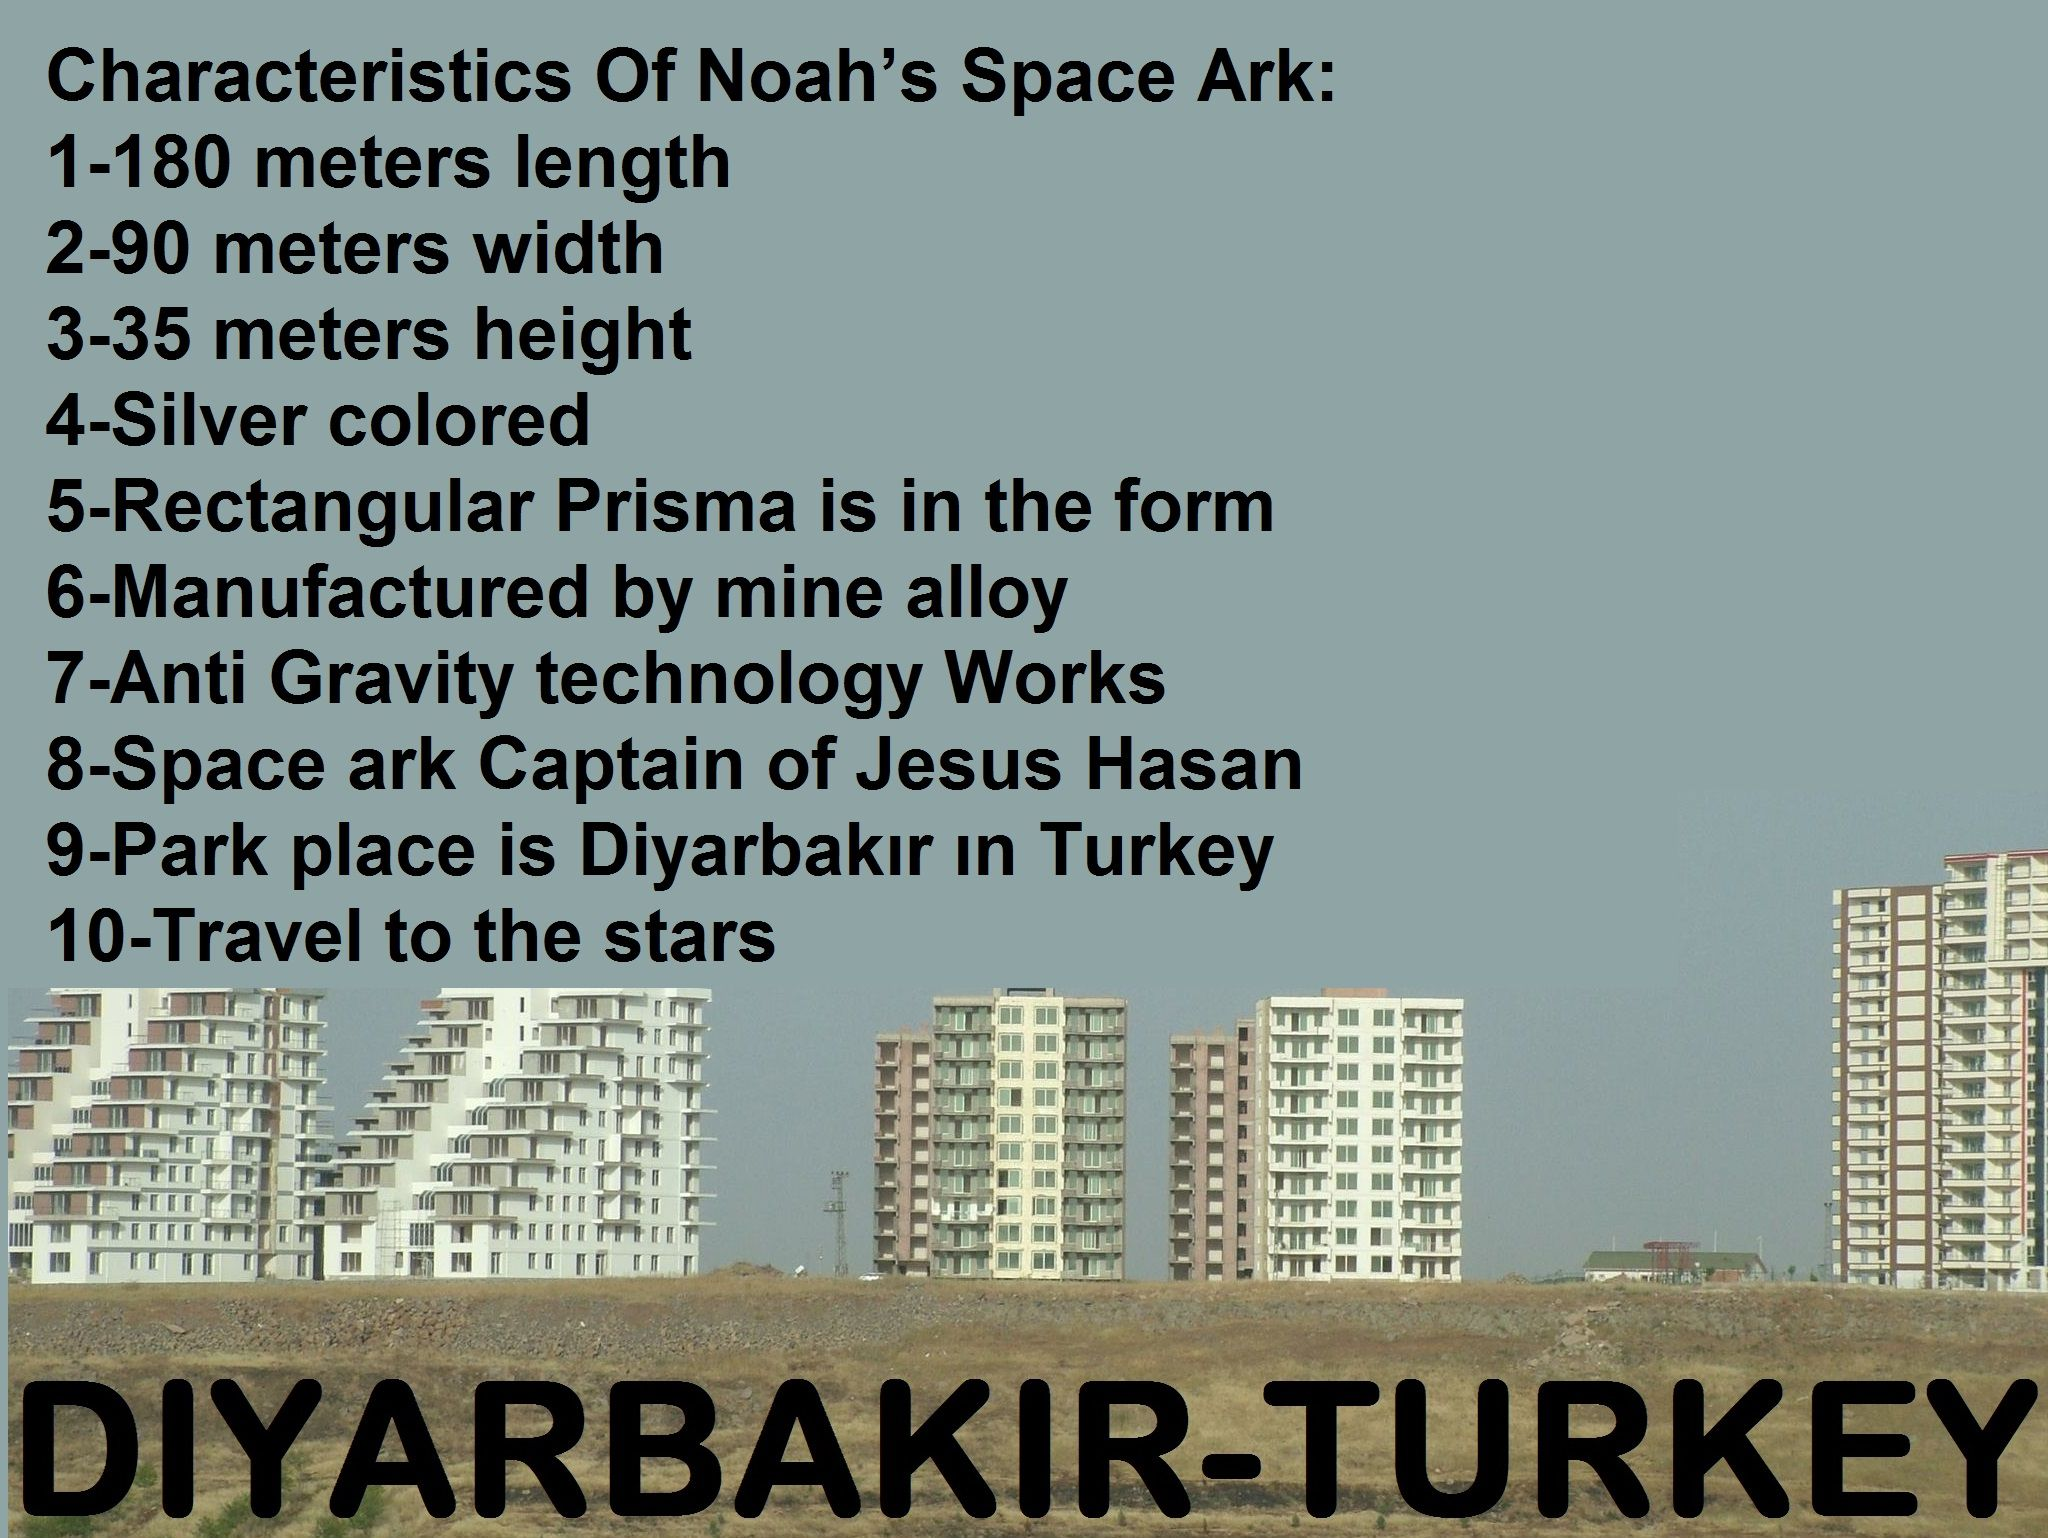 Characteristics Of Noah S Space Ark 1 180 Meters Length 2 90 Meters Width 3 35 Meters Height 4 Silver Colored 5 Rectangular Prisma Is In The Form 6 Manufa Akbas